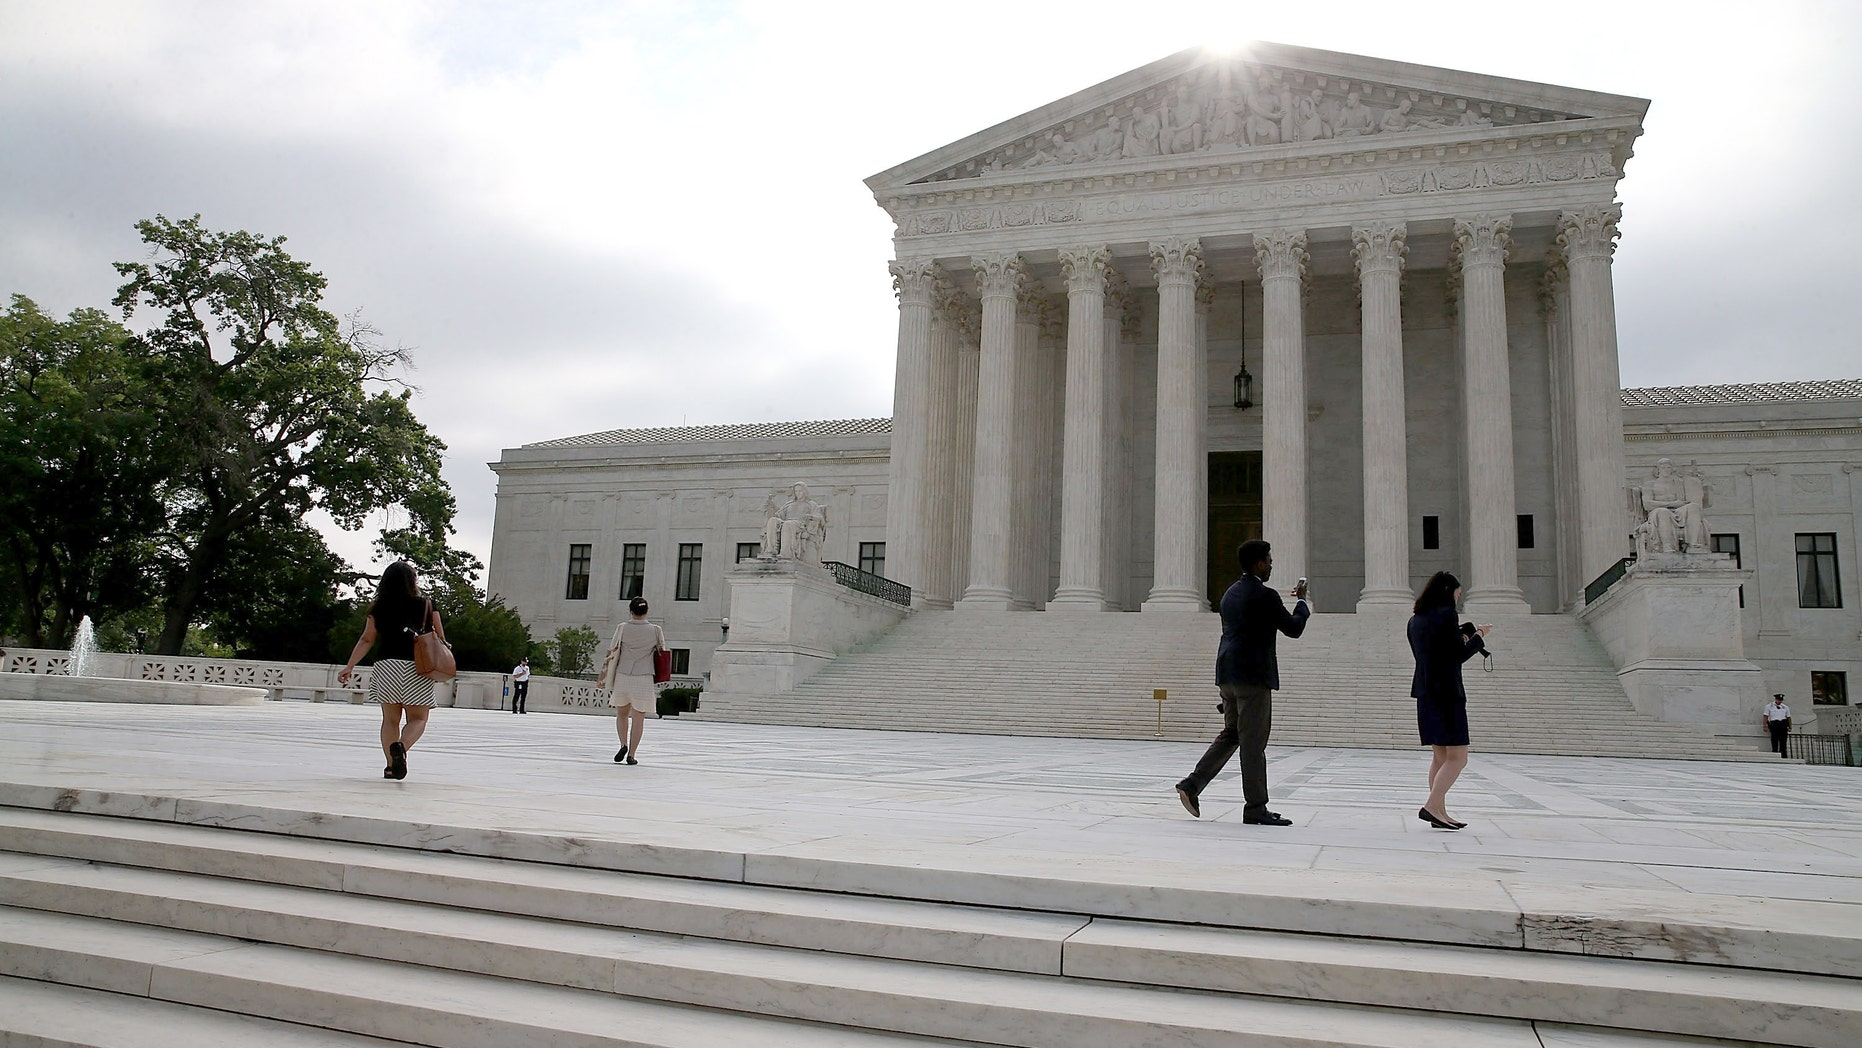 WASHINGTON, DC - JUNE 18:  People gather in front of the Supreme Court Building June 18, 2015 in Washington, DC. This month the high court is expected to hand down its ruling on gay marriage and Obamacare subsidies.  (Photo by Mark Wilson/Getty Images)